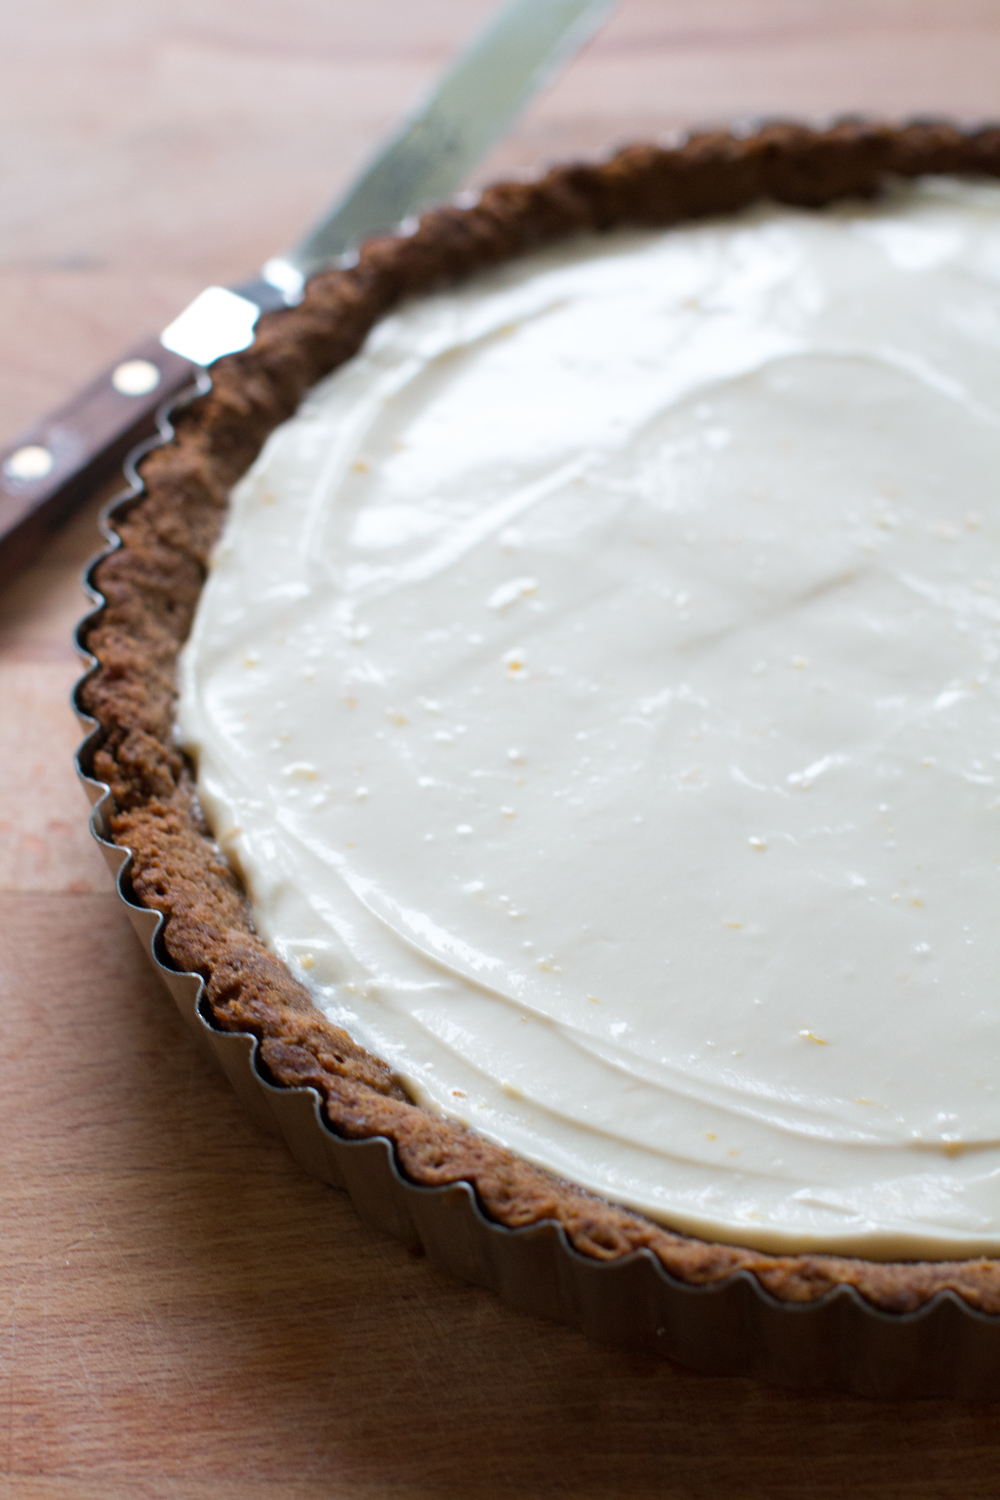 Fill the baked and chilled ginger molasses shell with the creamy meyer lemon and ginger mascarpone filling